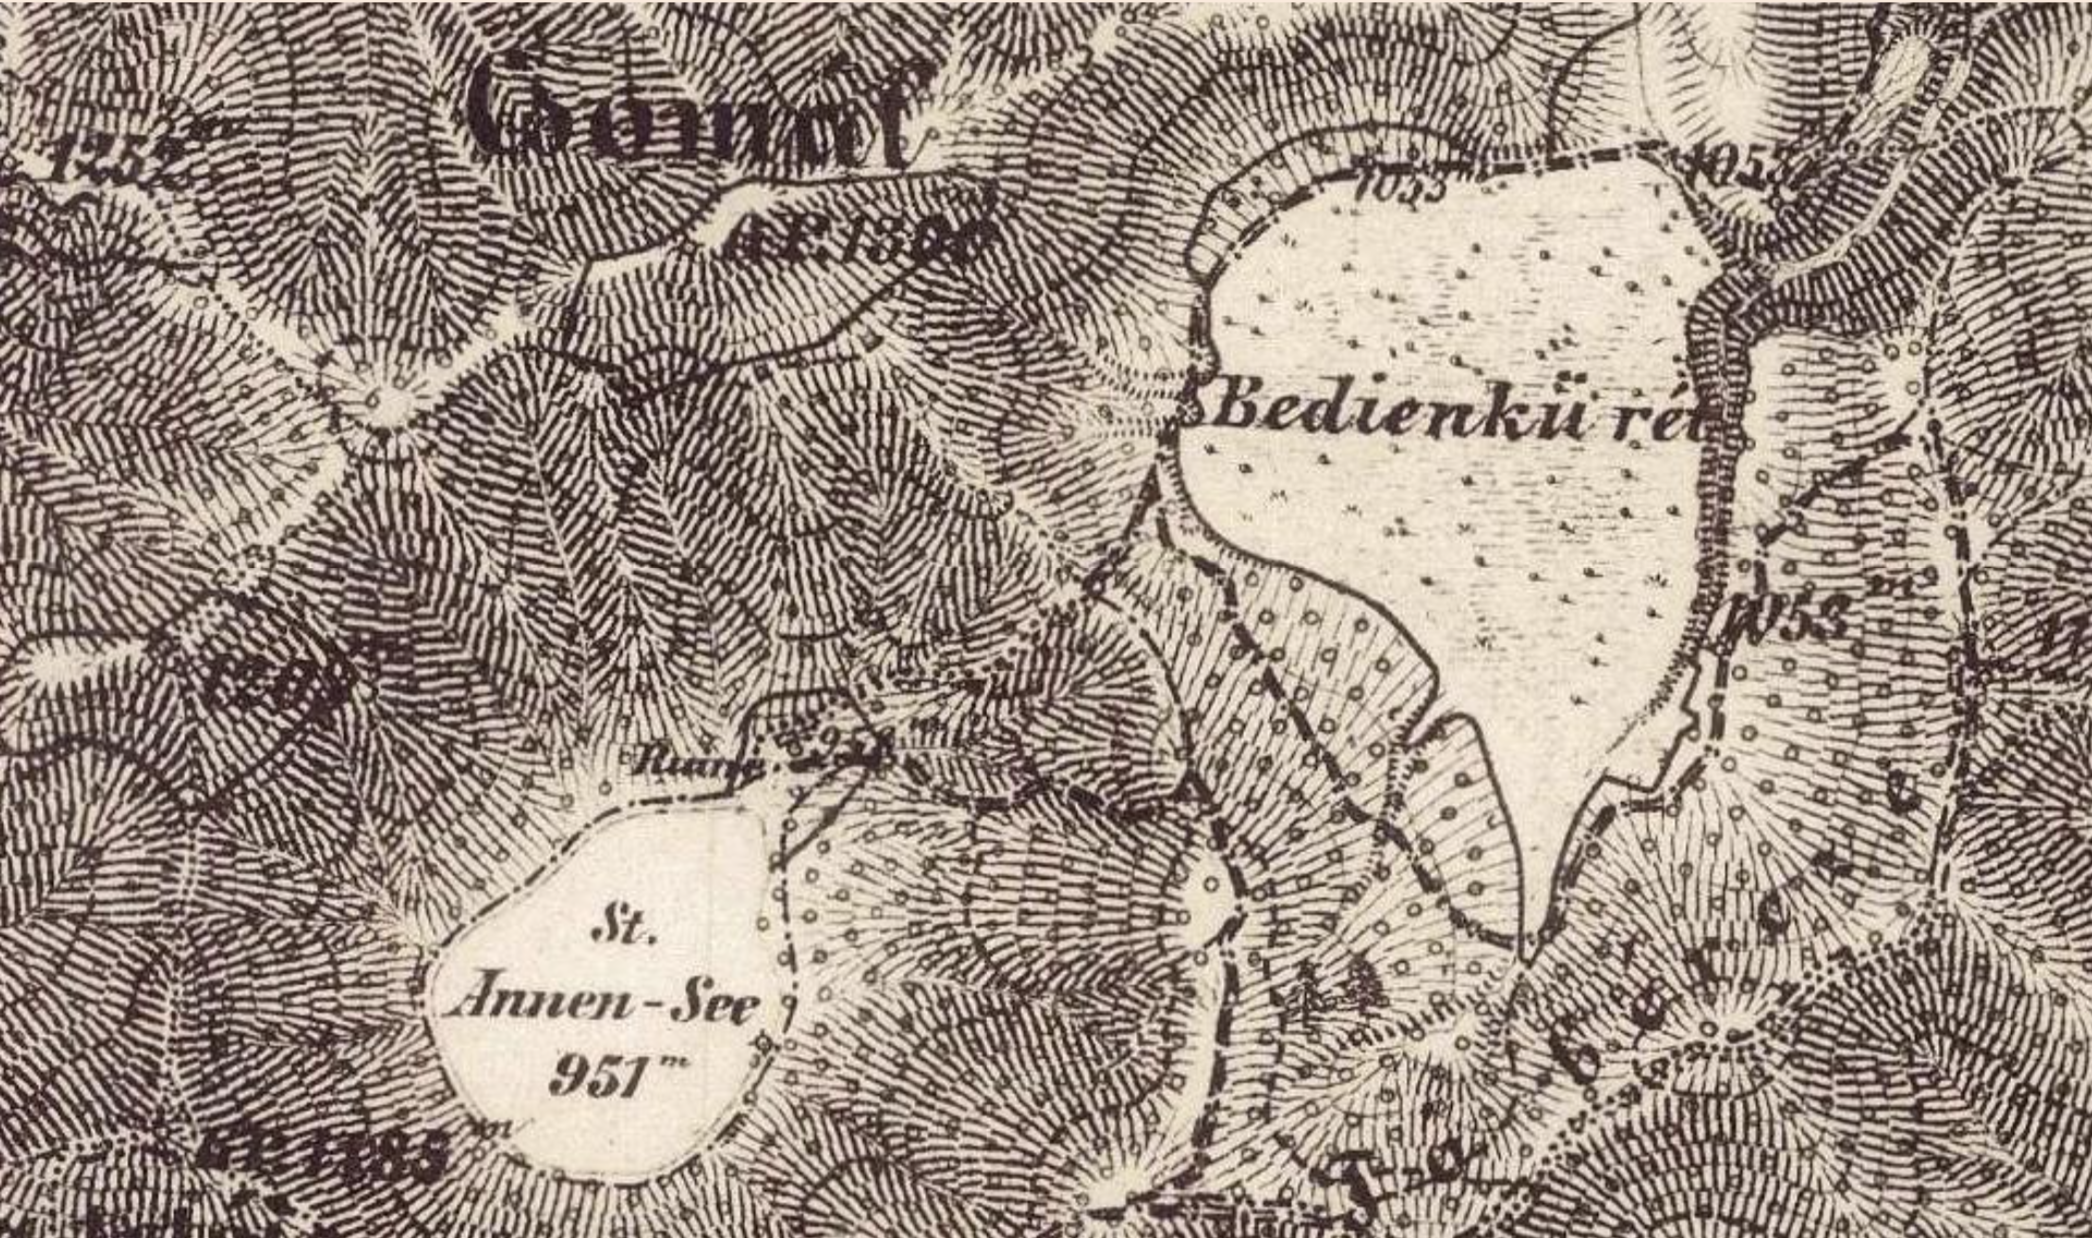 The second military map